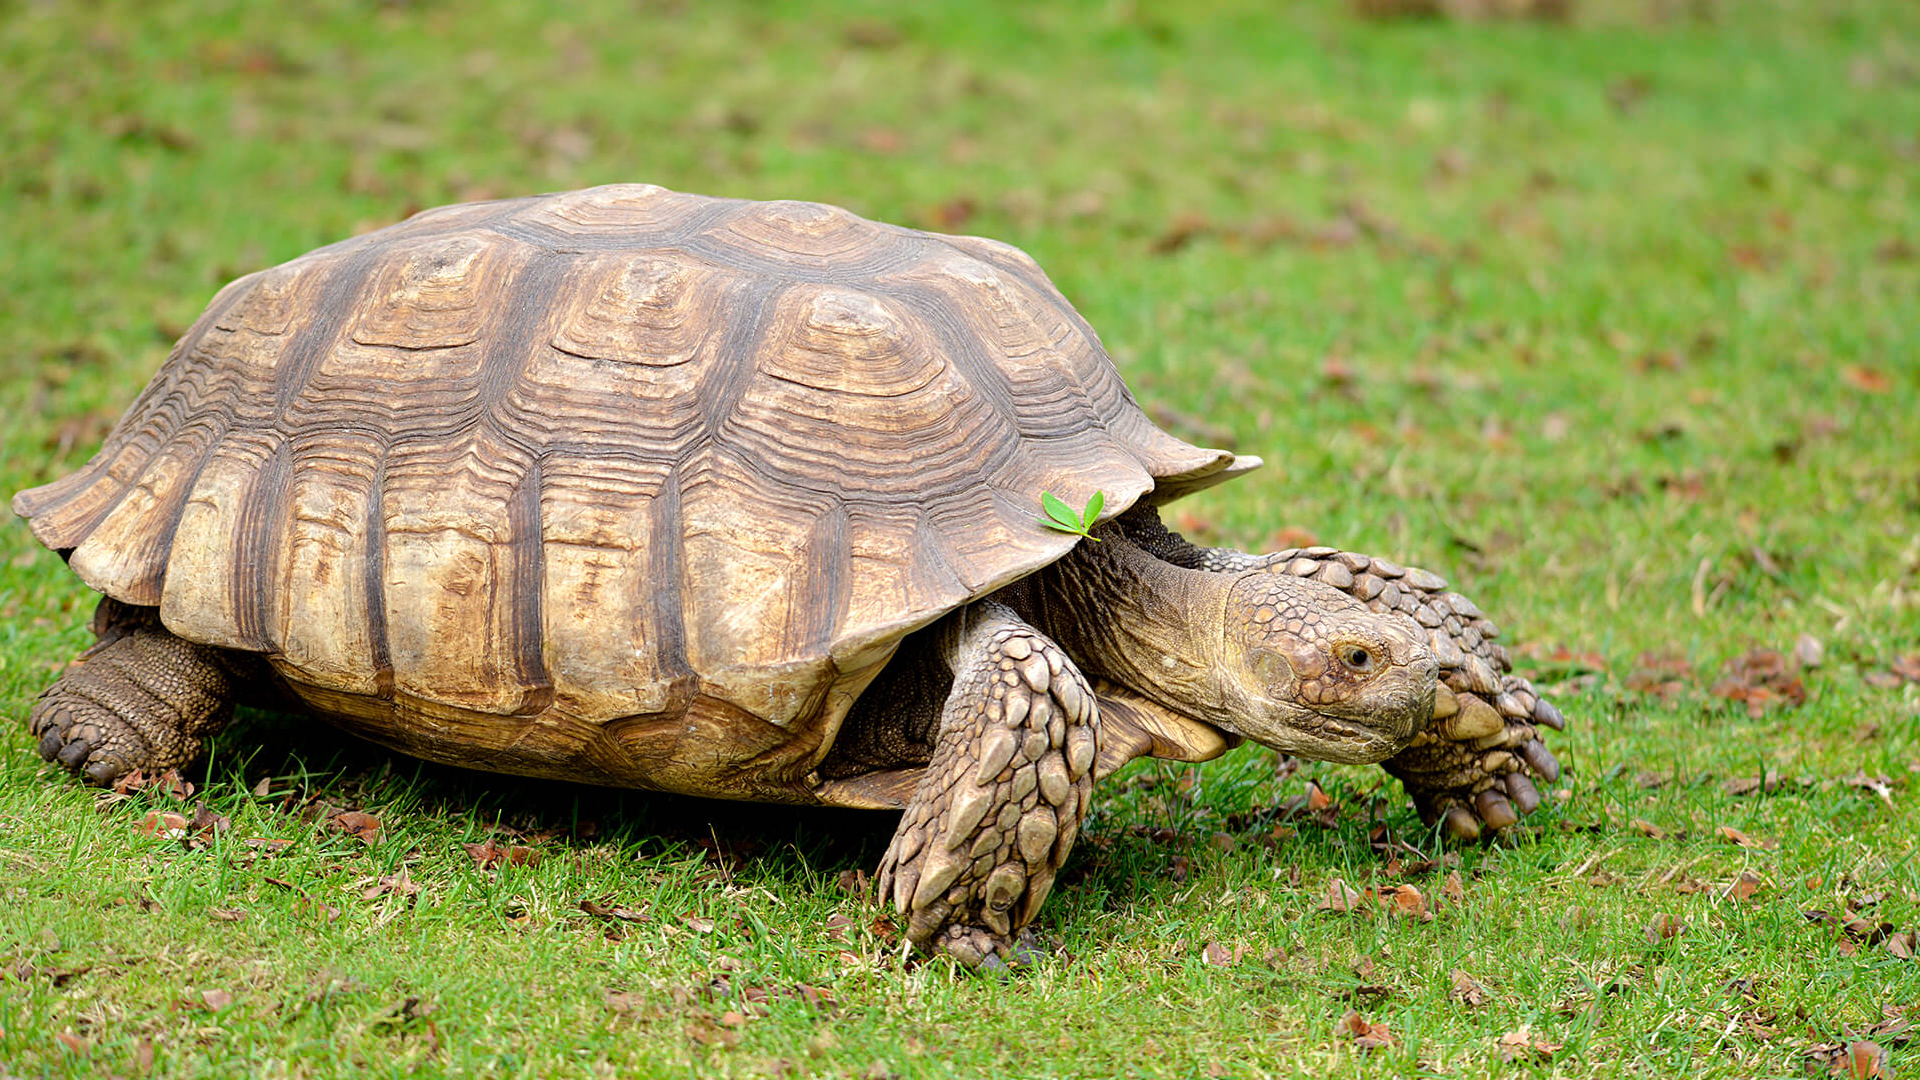 African Spurred Tortoise | San Diego Zoo Animals & Plants